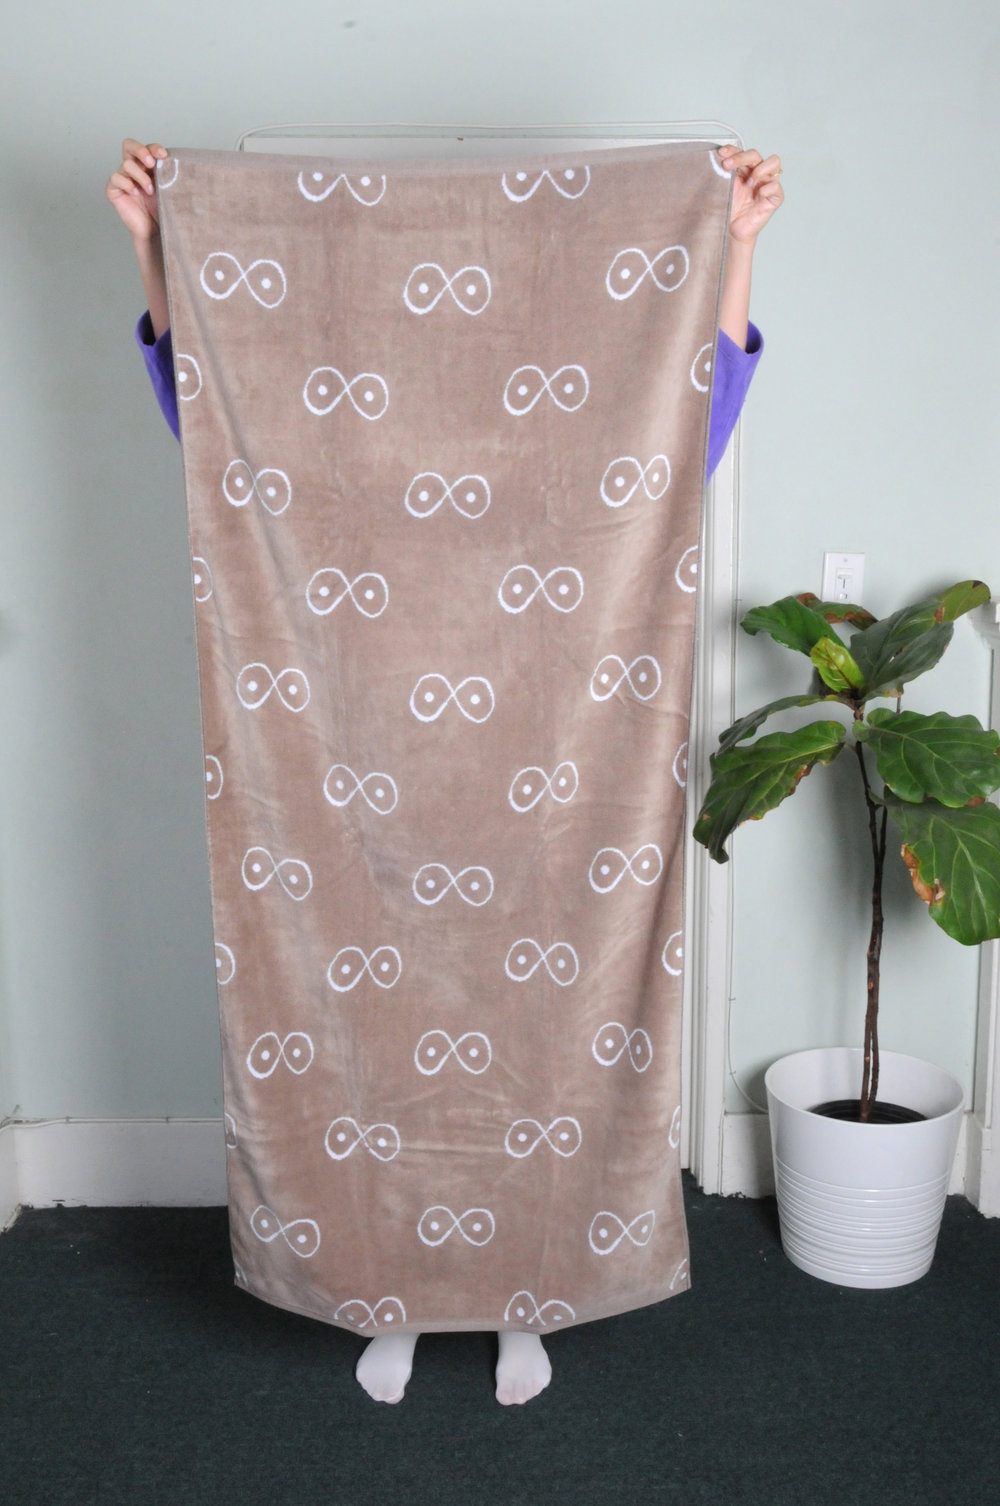 """essential towel - 0229COLOR : TAUPE AND WHITEFABRIC : SHEERED TERRY100% COTTONMADE ETHICALLY IN THE USASIZES : ONE SIZE (30"""" x 66"""")WHOLESALE $39 / RETAIL $78"""